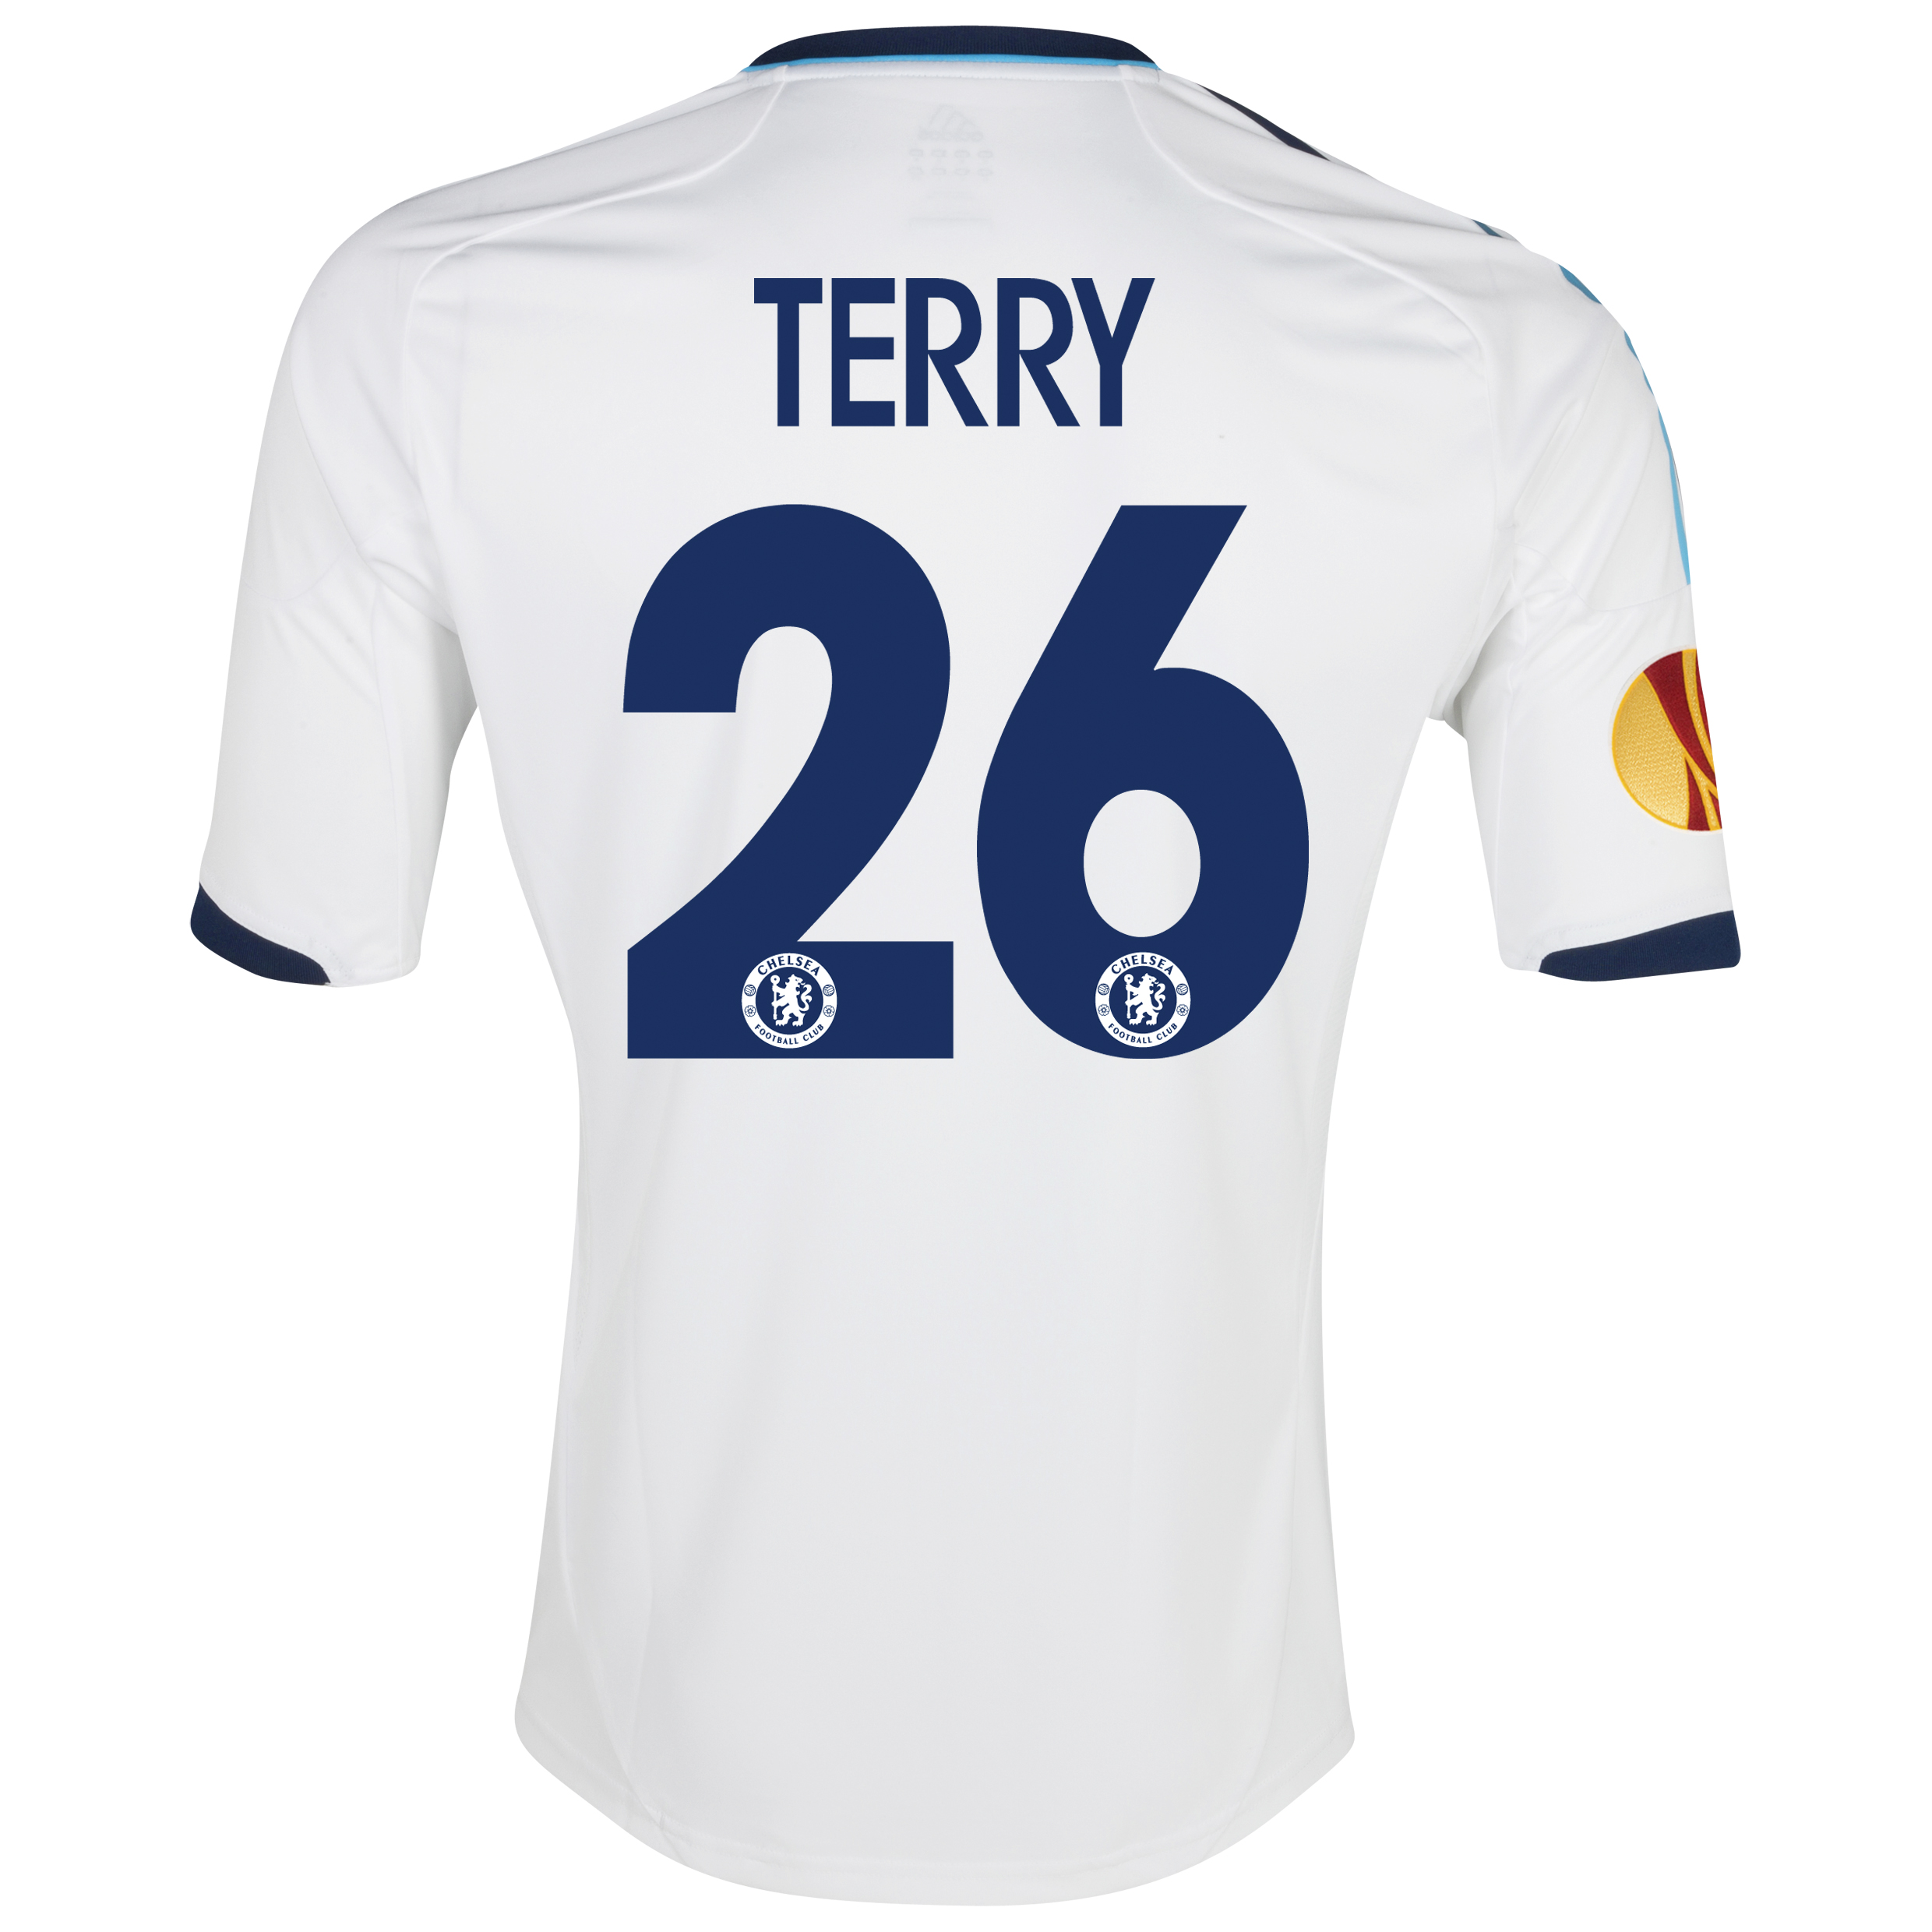 Chelsea UEFA Europa League Away Shirt 2012/13 with Terry 26 printing Including Europa Badge